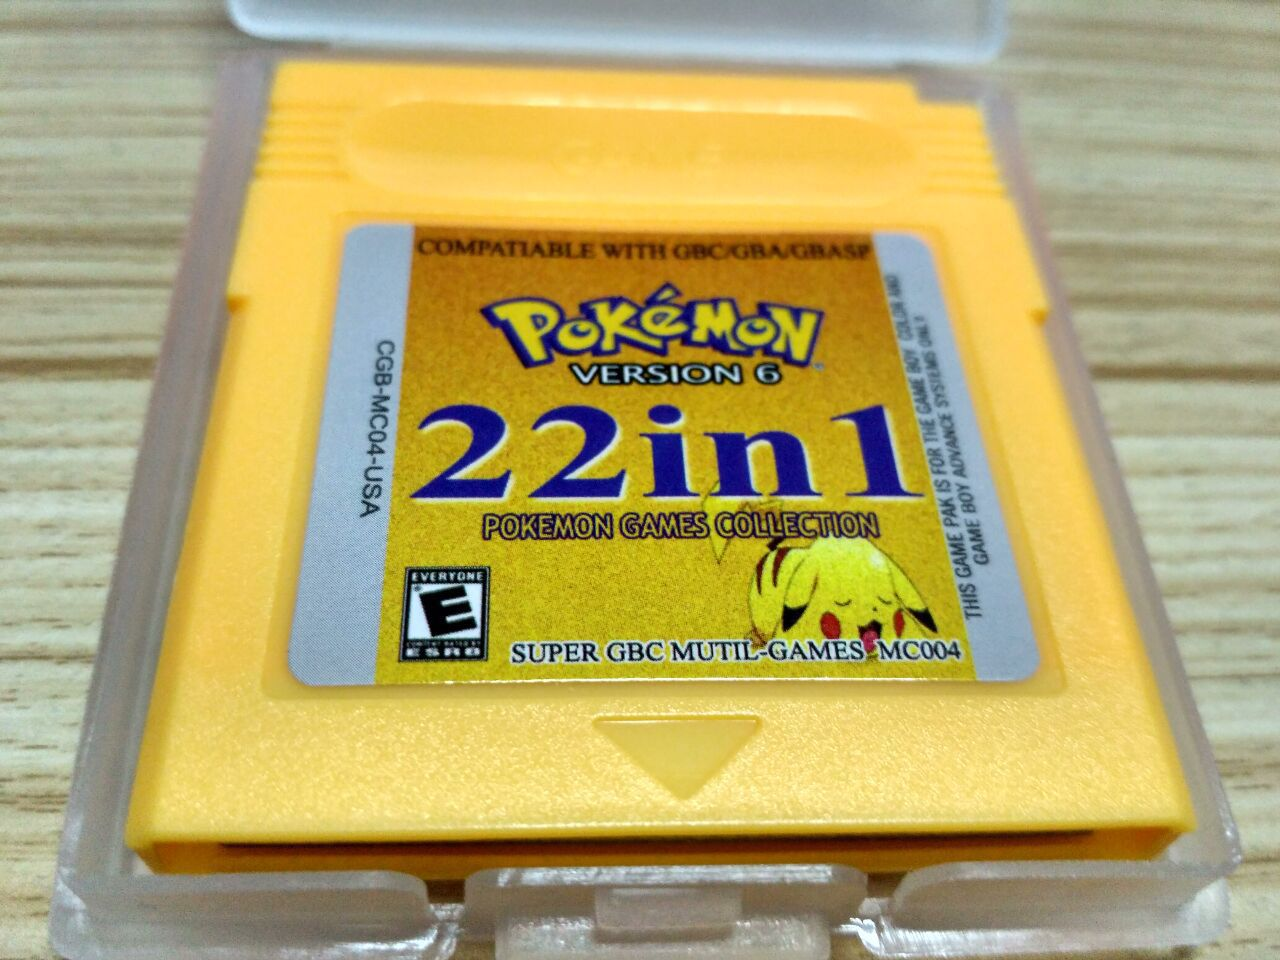 font-b-pokemon-b-font-series-ndsl-gb-gbc-gbm-gba-22-in-1-collect-video-game-cartridge-console-card-classic-colorful-version-english-language